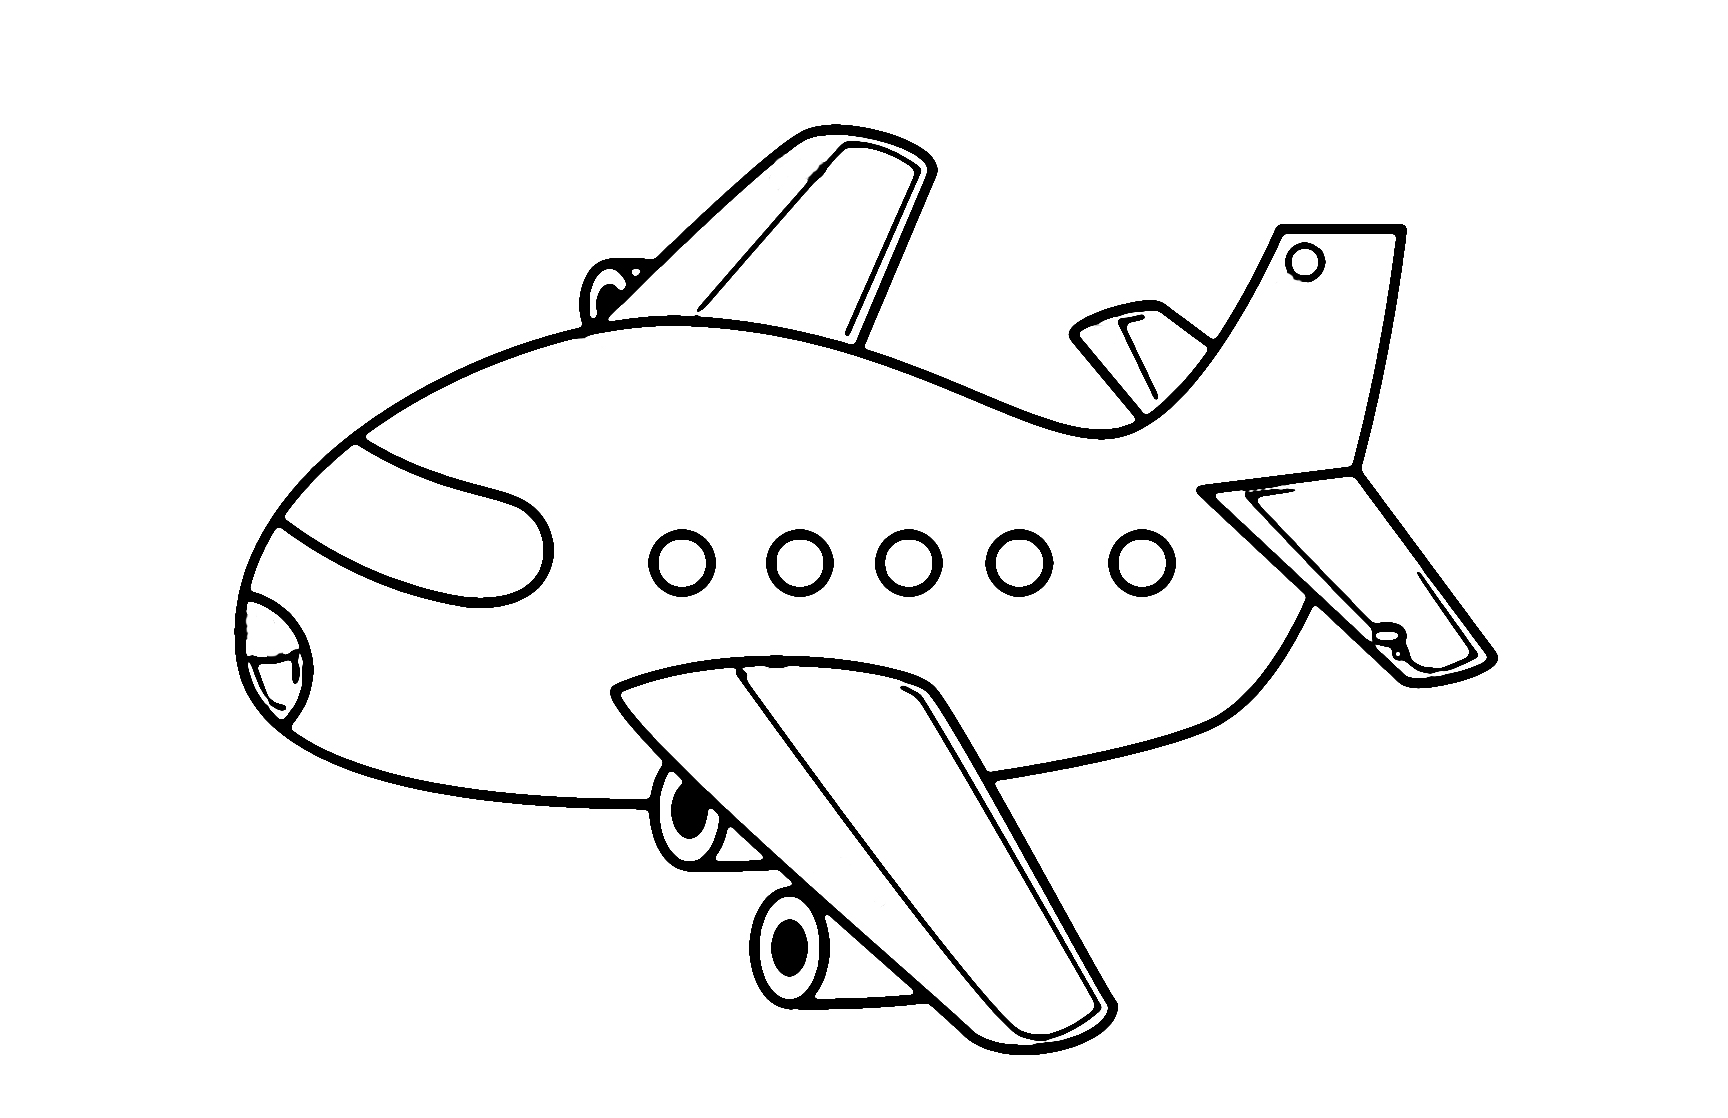 planes coloring pictures airplane print out coloring pages bestappsforkidscom planes pictures coloring